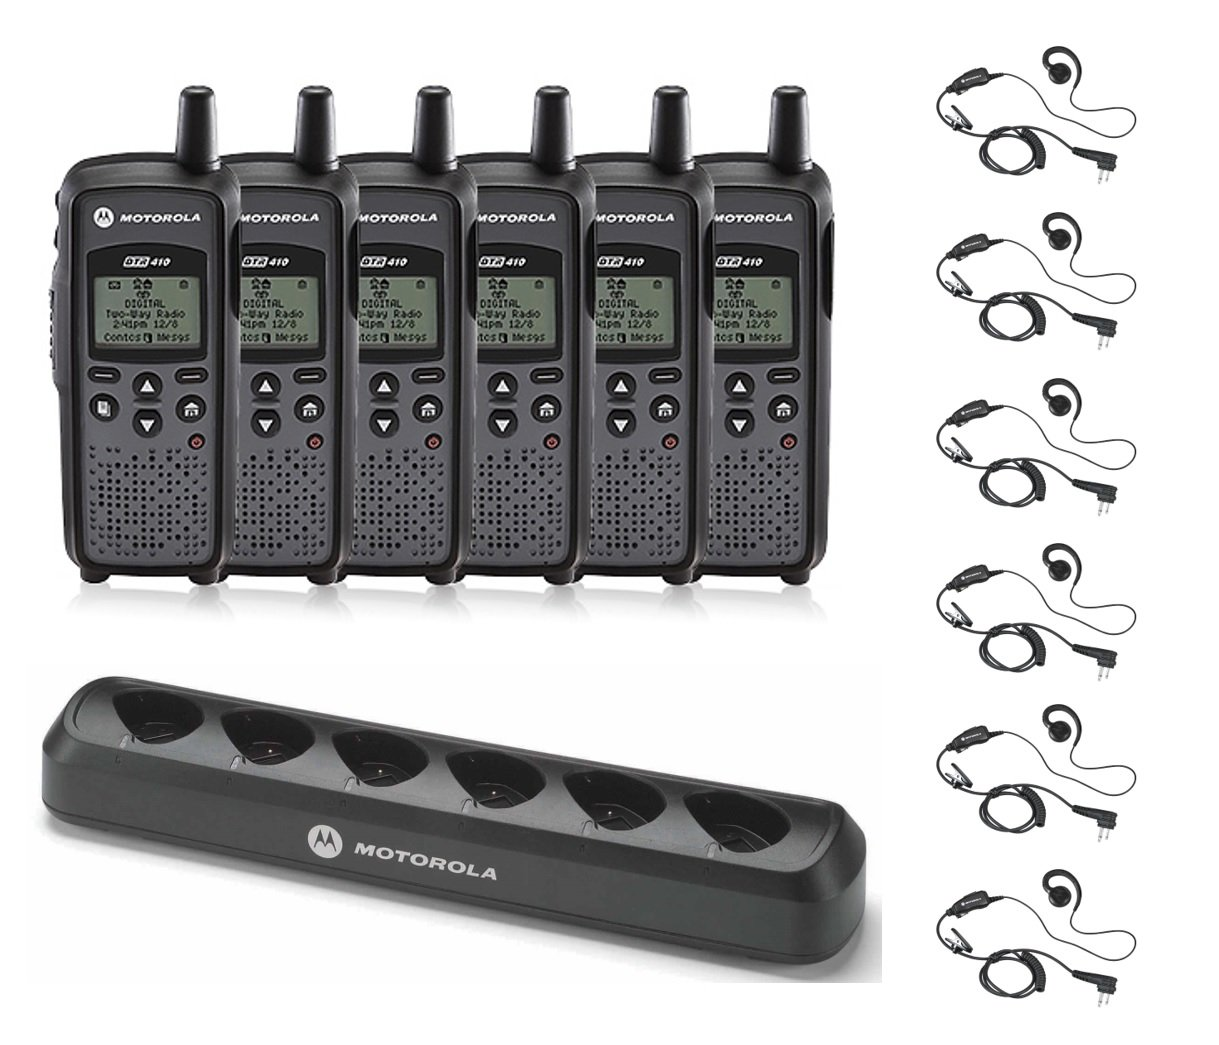 6 Pack of Motorola DTR410 Radios with 6 Push To Talk (PTT) earpieces and a 6-Bank Radio Charger by Motorola